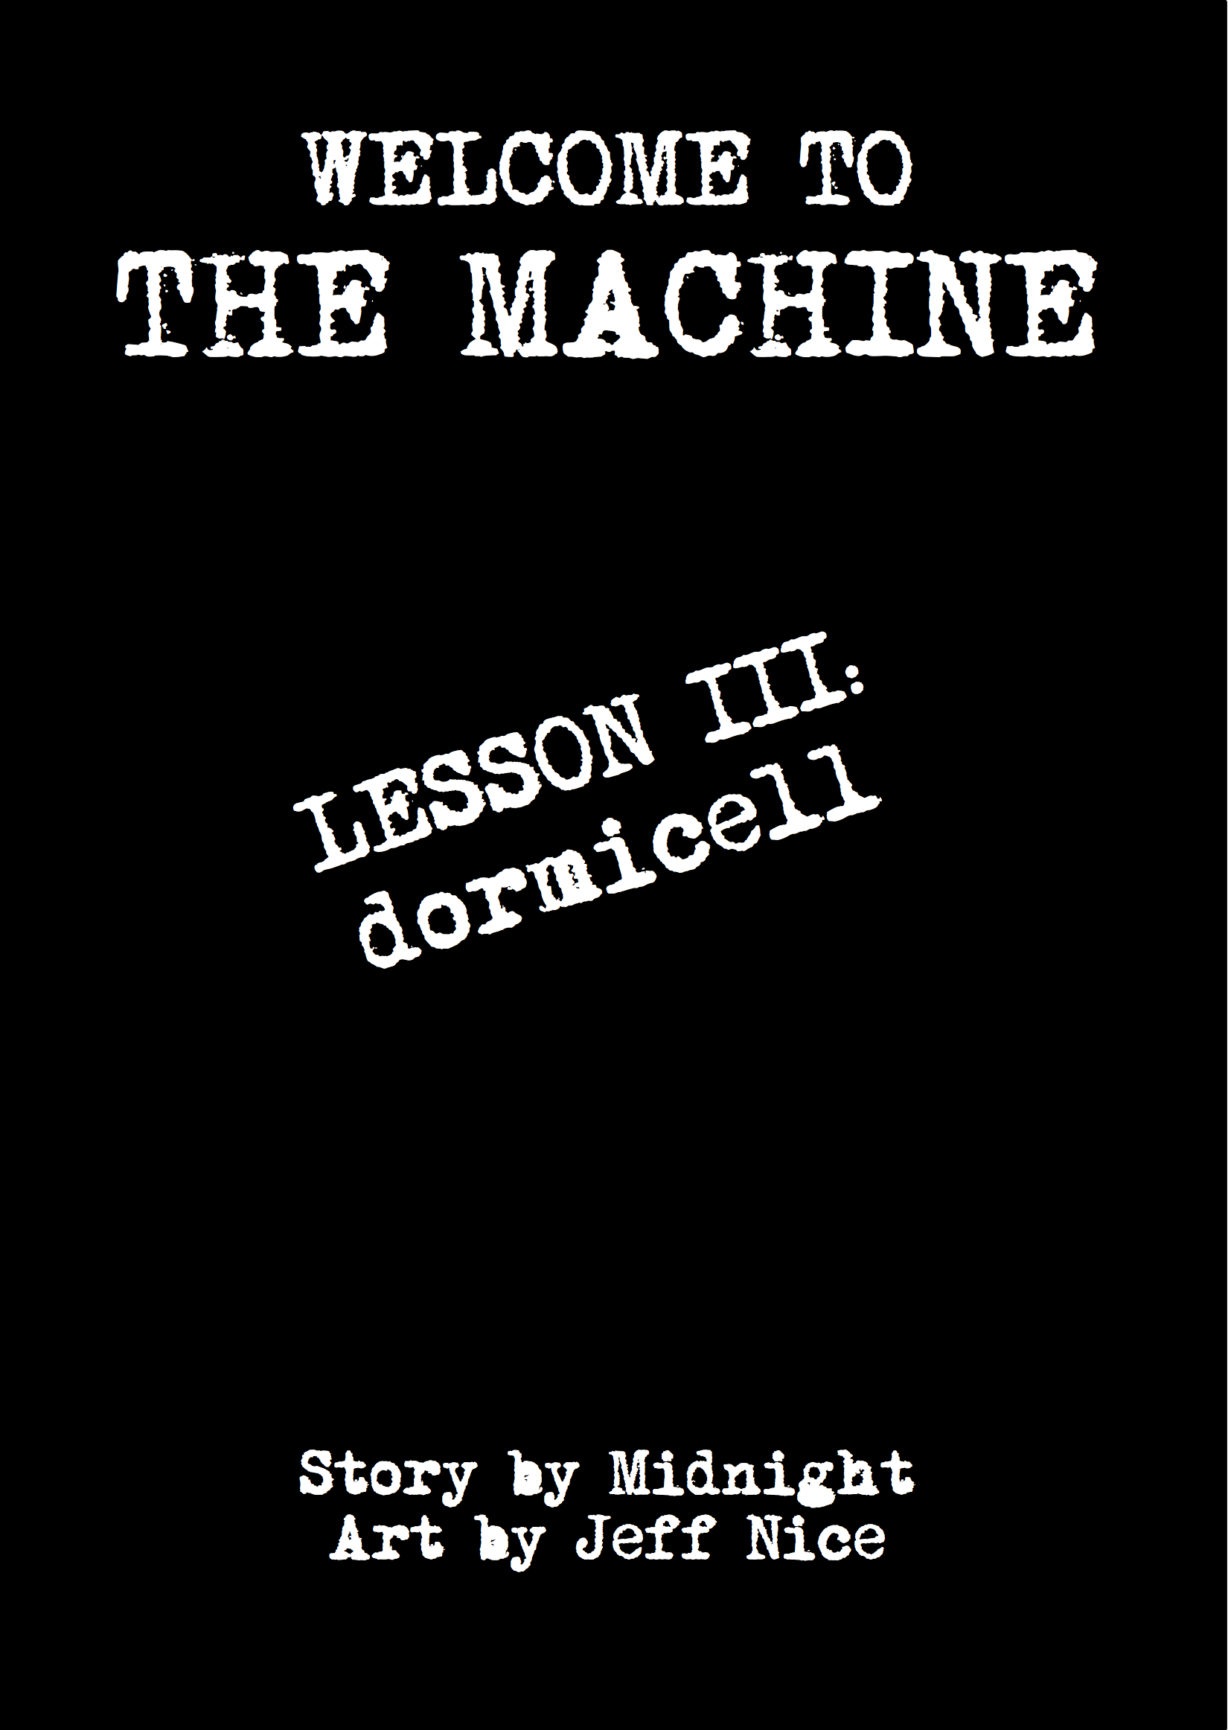 Chapter III: Dormicell